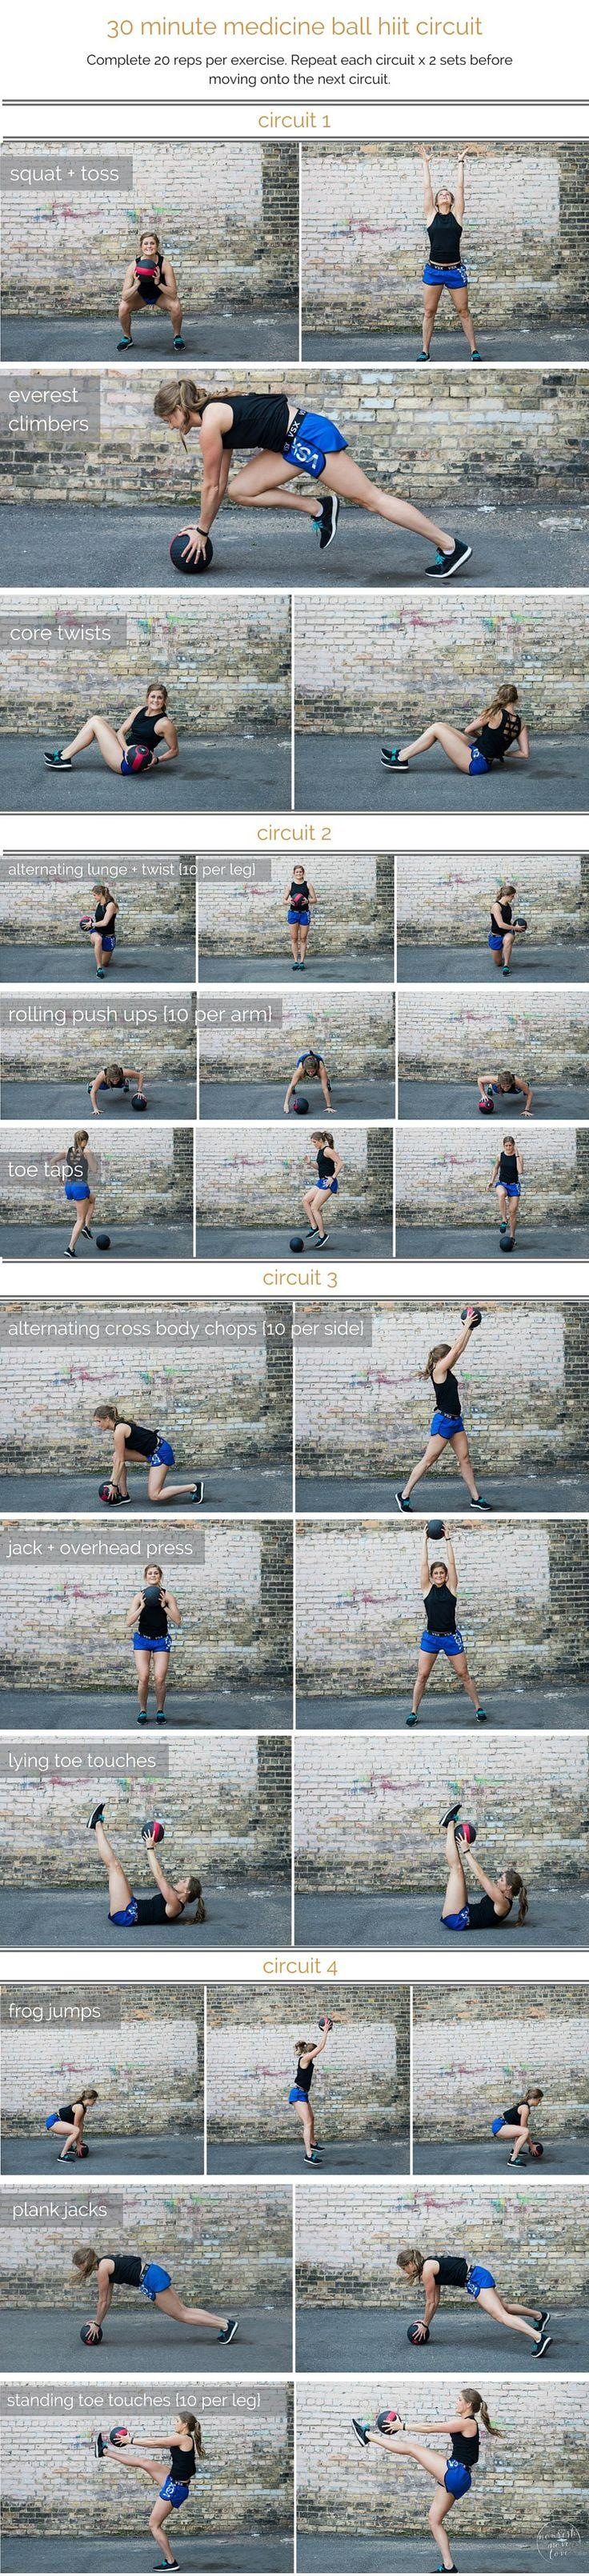 Wedding - Medicine Ball Hiit Circuit Workout